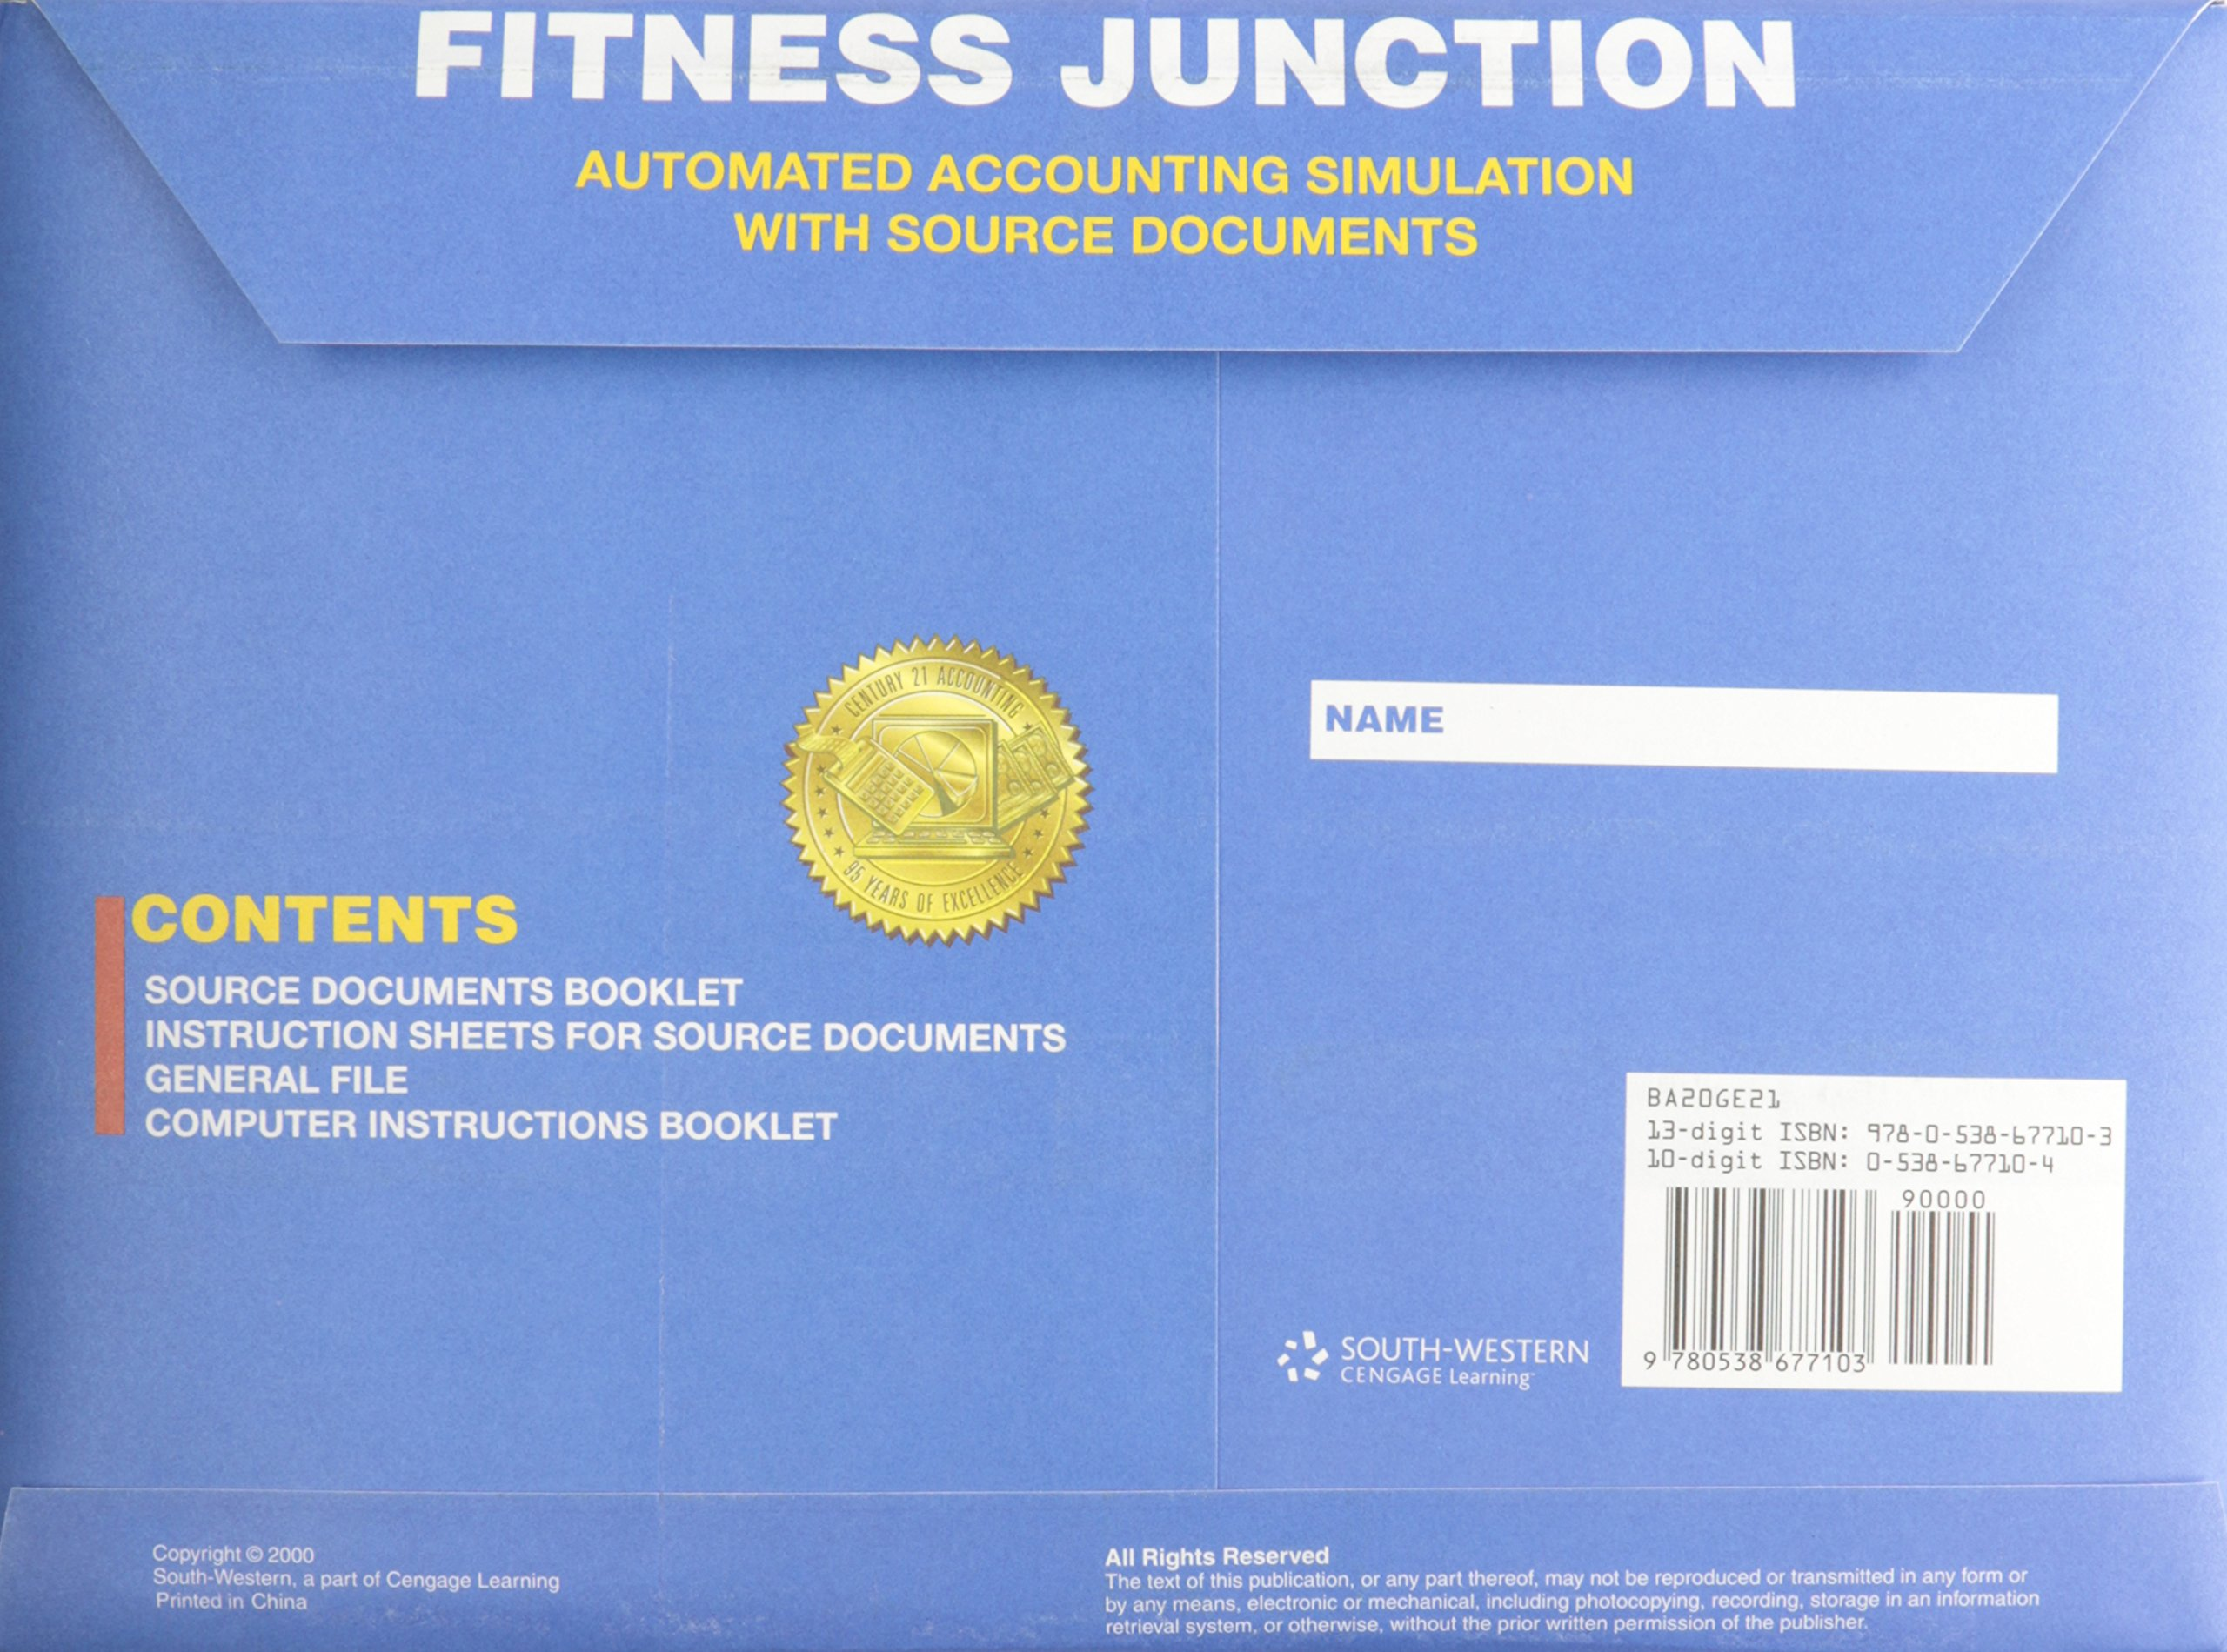 fitness junction automated accounting simulation with source rh amazon com Life Fitness Treadmill Life Fitness Manuals